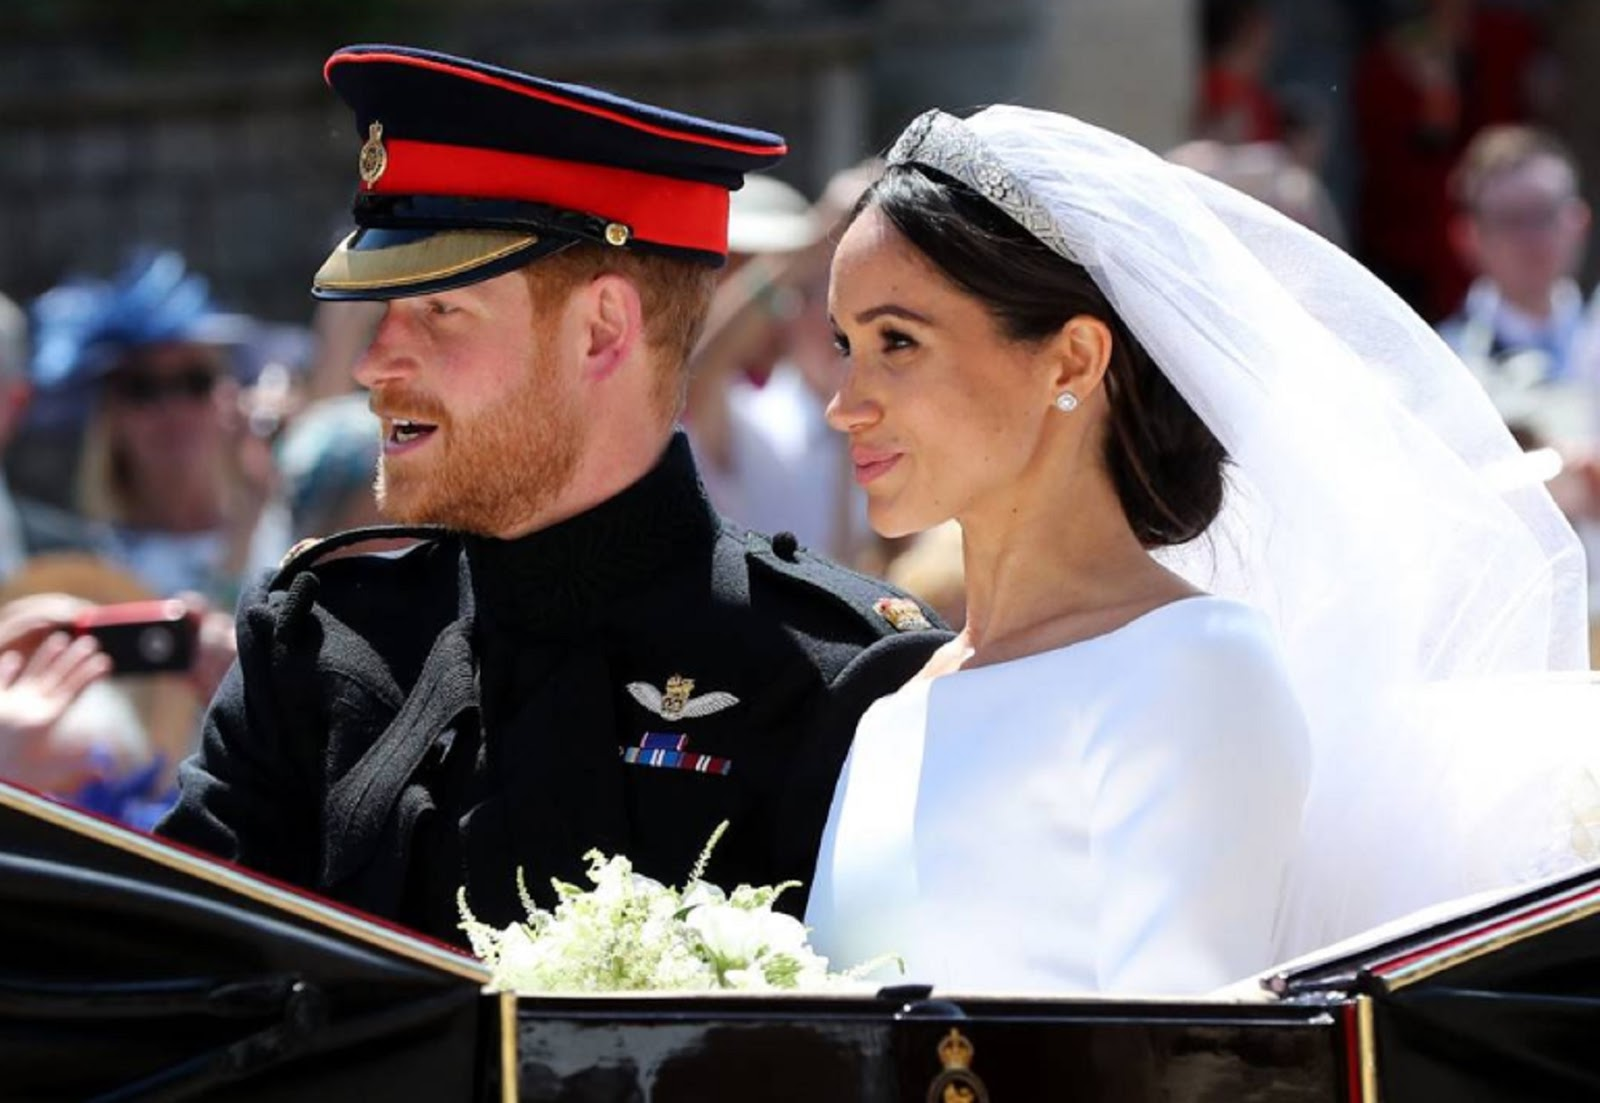 PRINCE HARRY, MEGHAN MARKLE 7